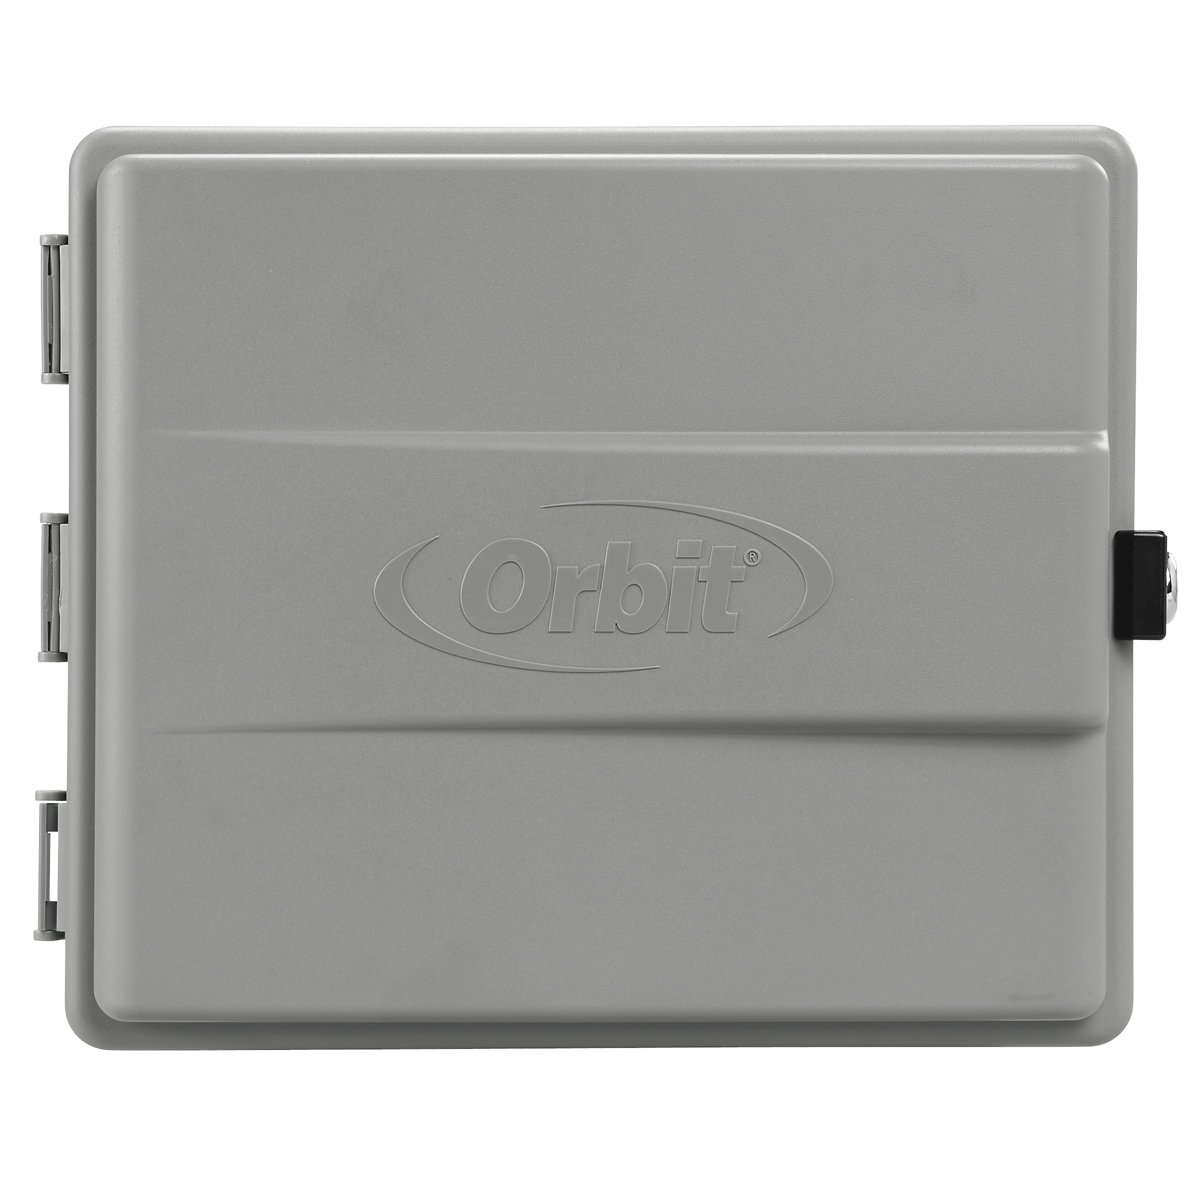 Orbit 57095 Sprinkler System Weather-Resistant Outdoor-Mounted Controller Timer Box Cover